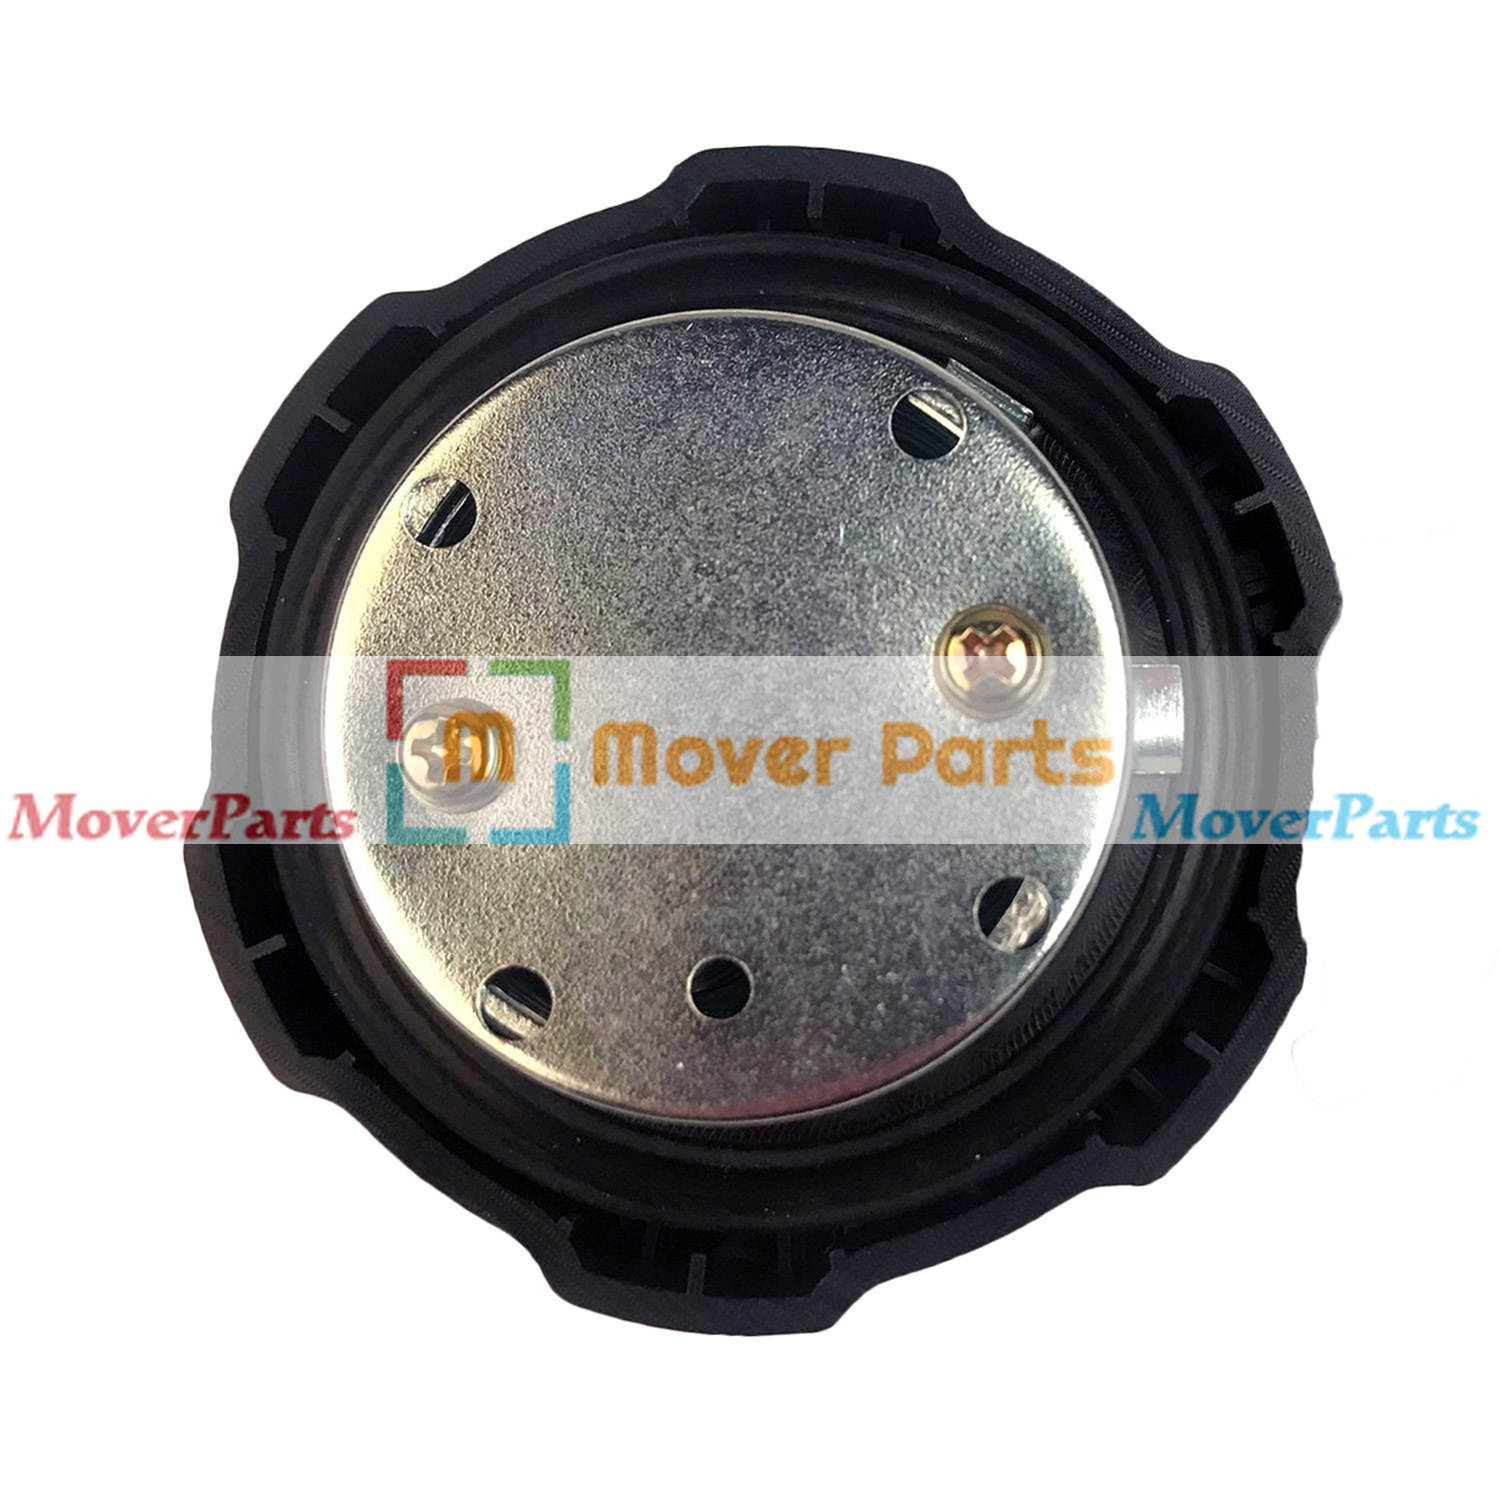 Mover Parts Fuel Tank Cap With 2 Keys For Kubota 151 161 185 Excavator Q581 ZX KX91-3